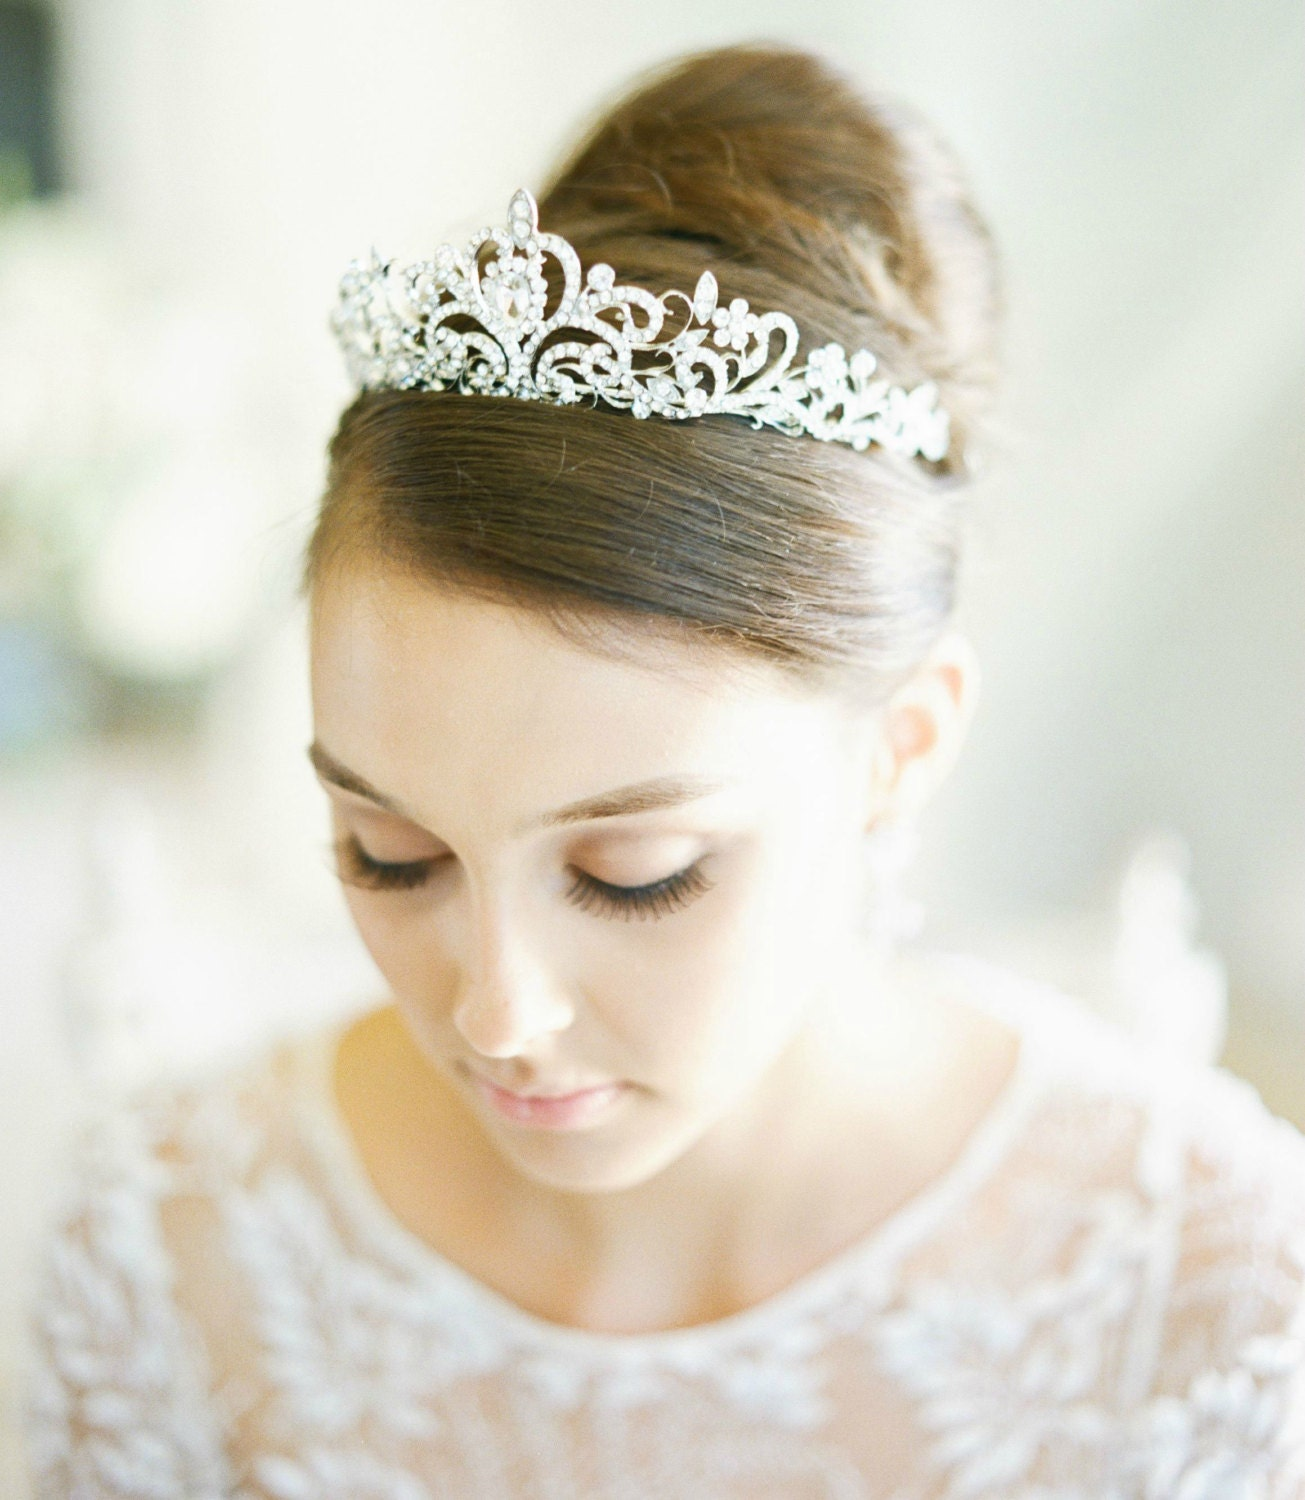 Swarovski Crystal Bridal Tiara FAITH Bridal Tiara Silver